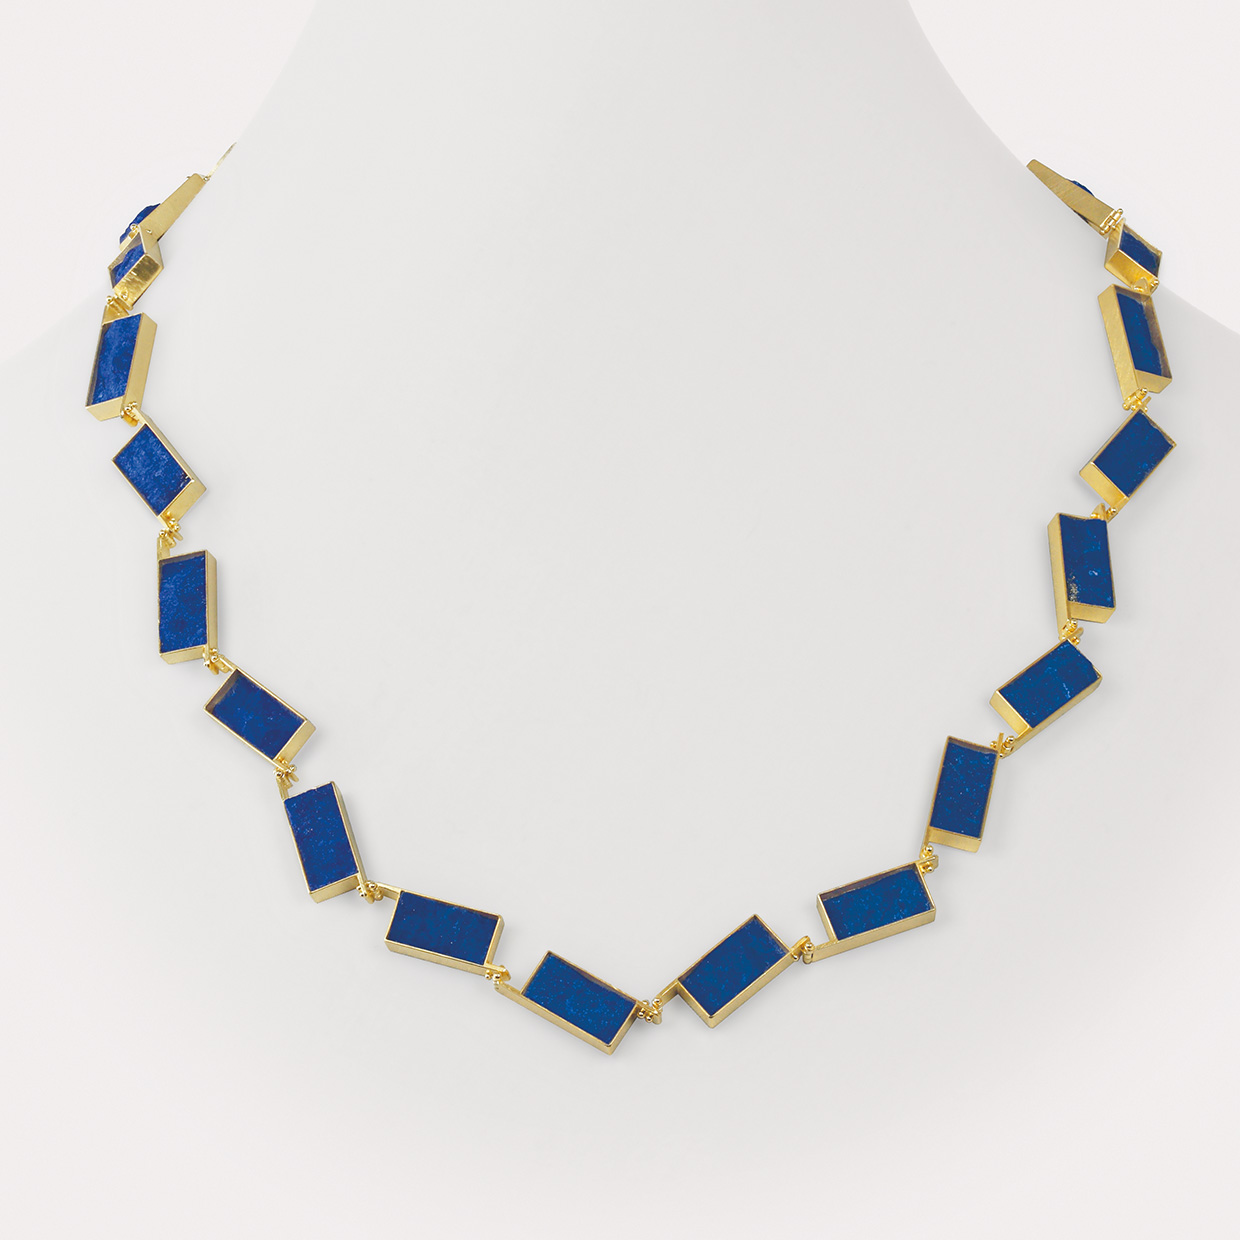 necklace  2015  gold  750  lapislazuli  620x20x4  mm